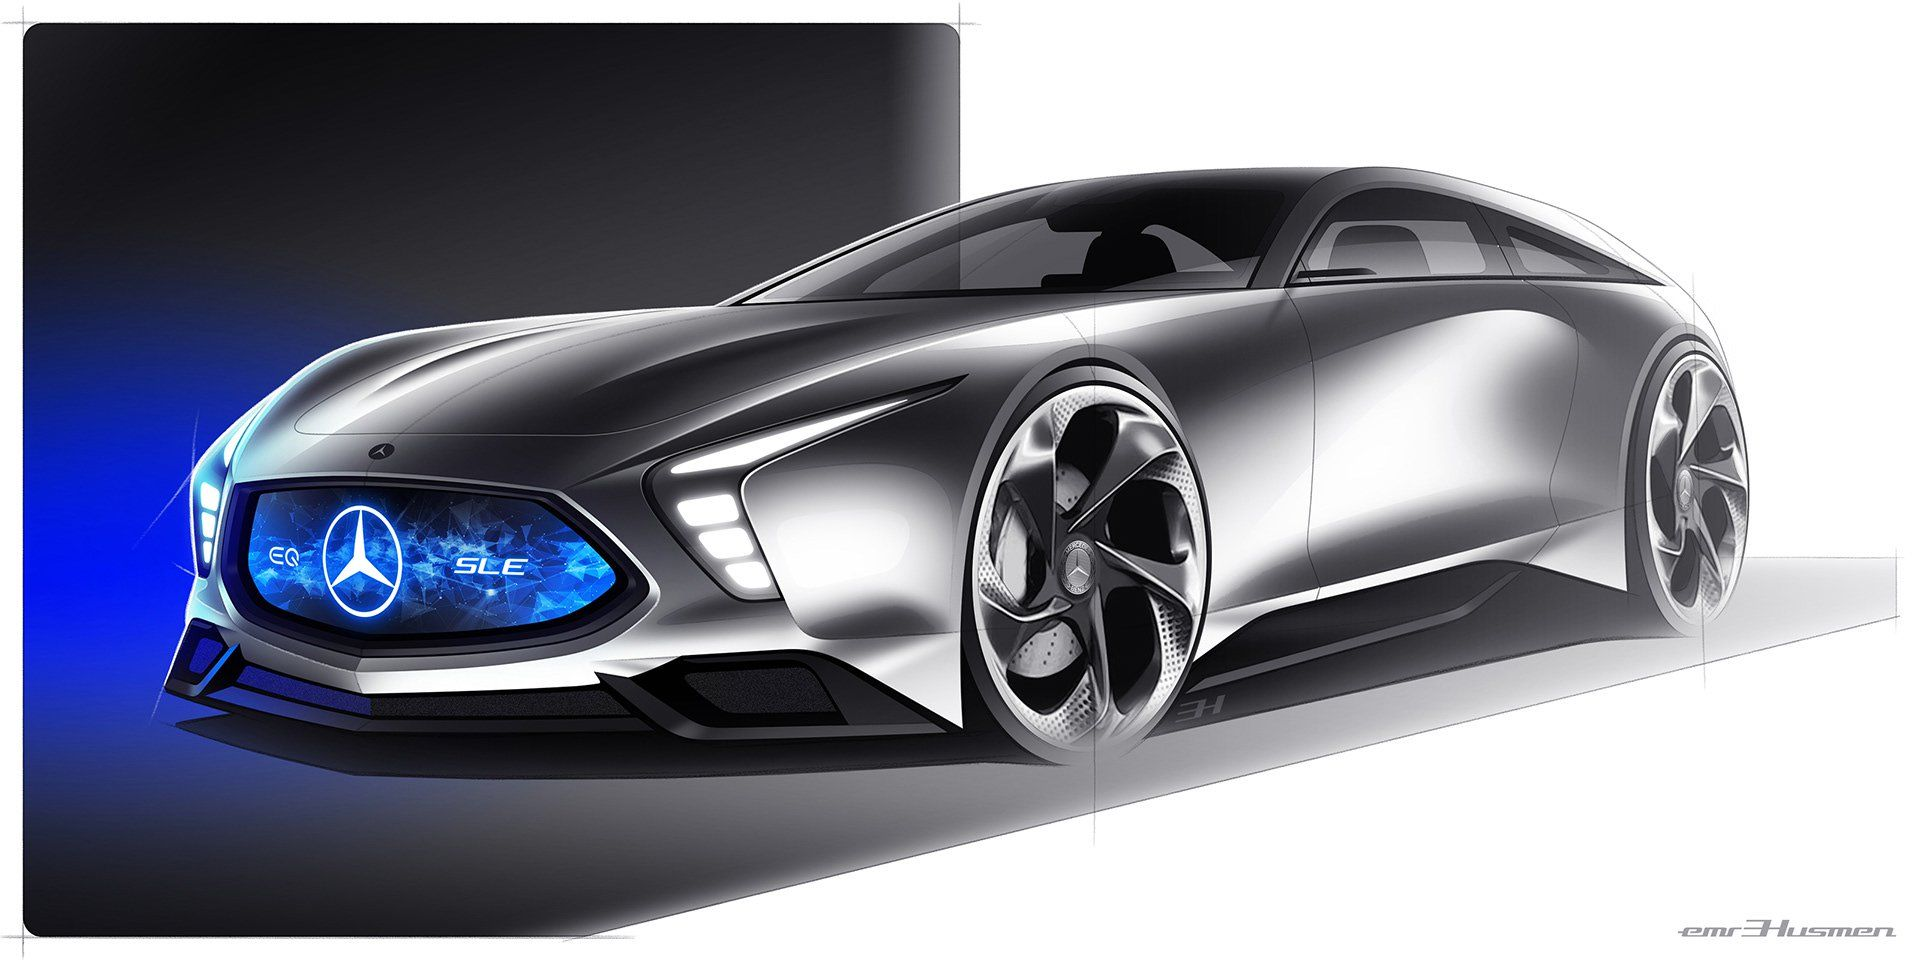 Mercedes Benz Sle Shooting Brake Offers An Futuristic Take On The Sl S Future Carscoops Benz Mercedes Benz Mercedes Concept